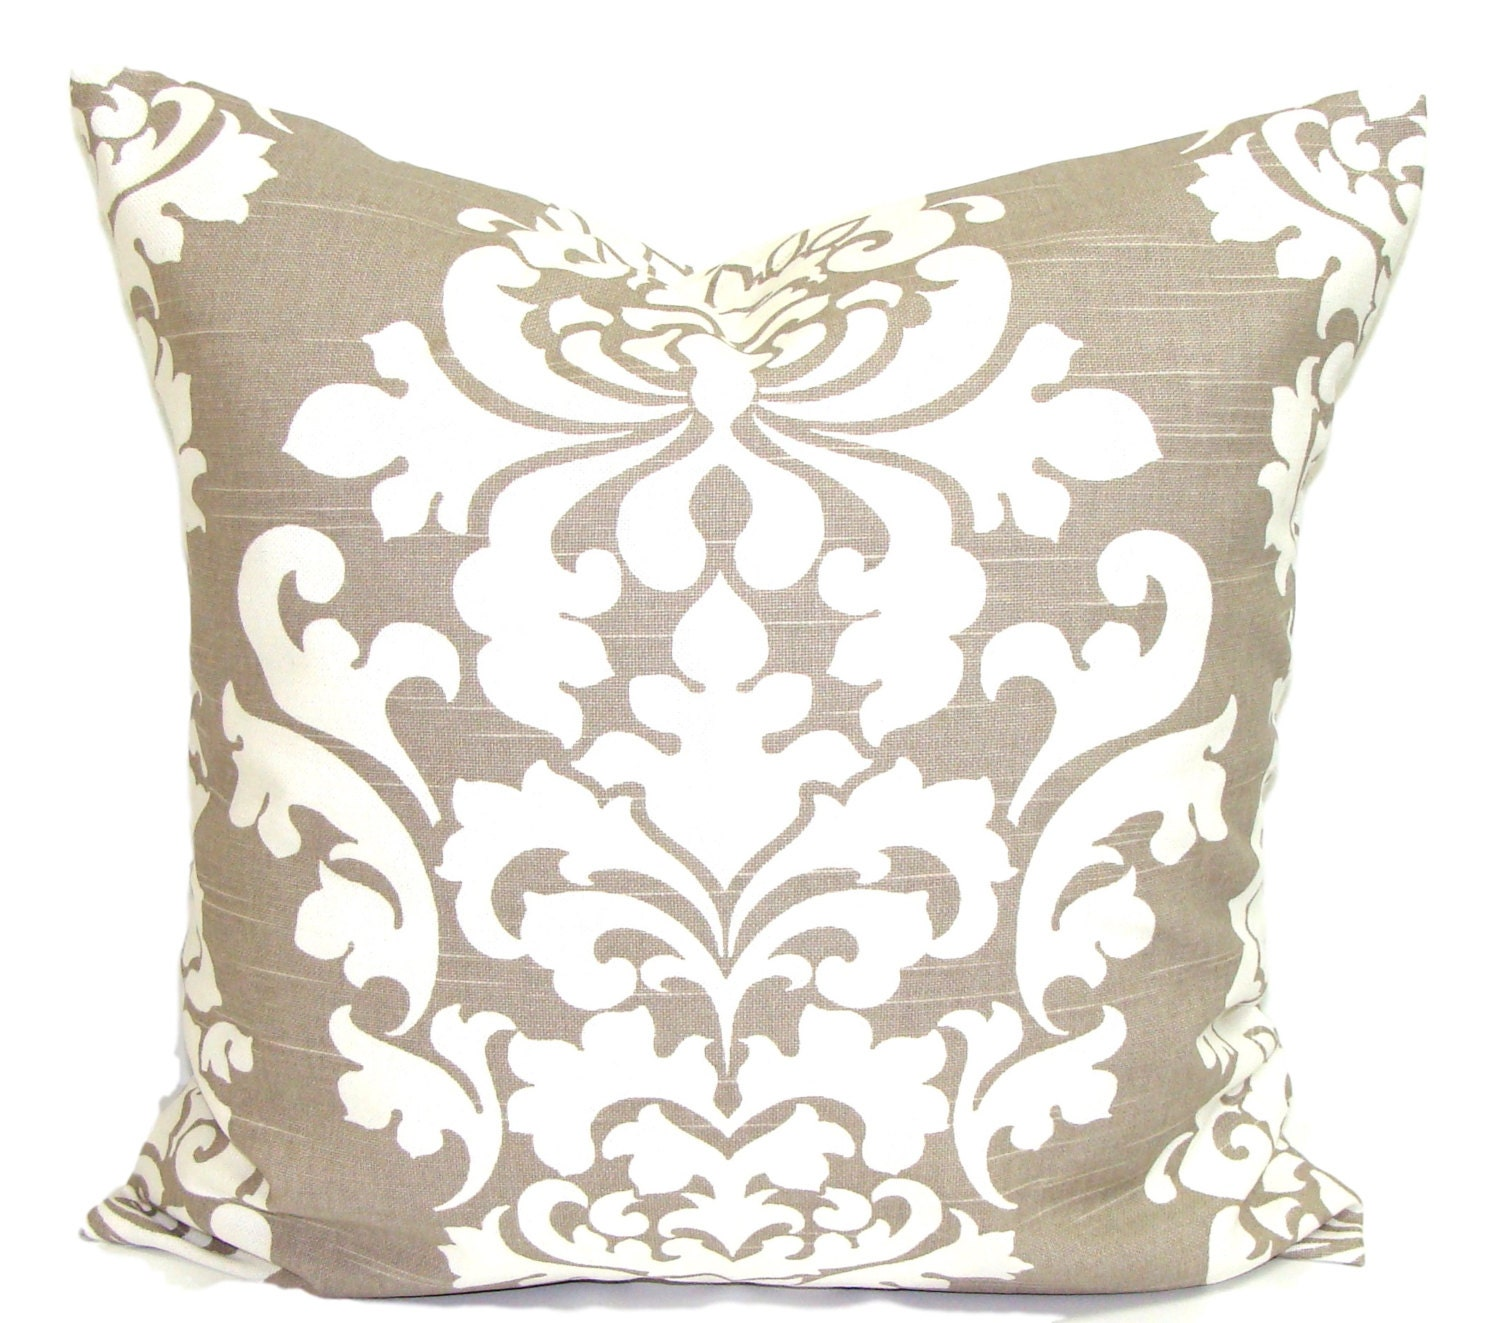 Throw Pillows Taupe : Taupe PILLOWS Neutral Pillow Cover Decorative Pillow Throw